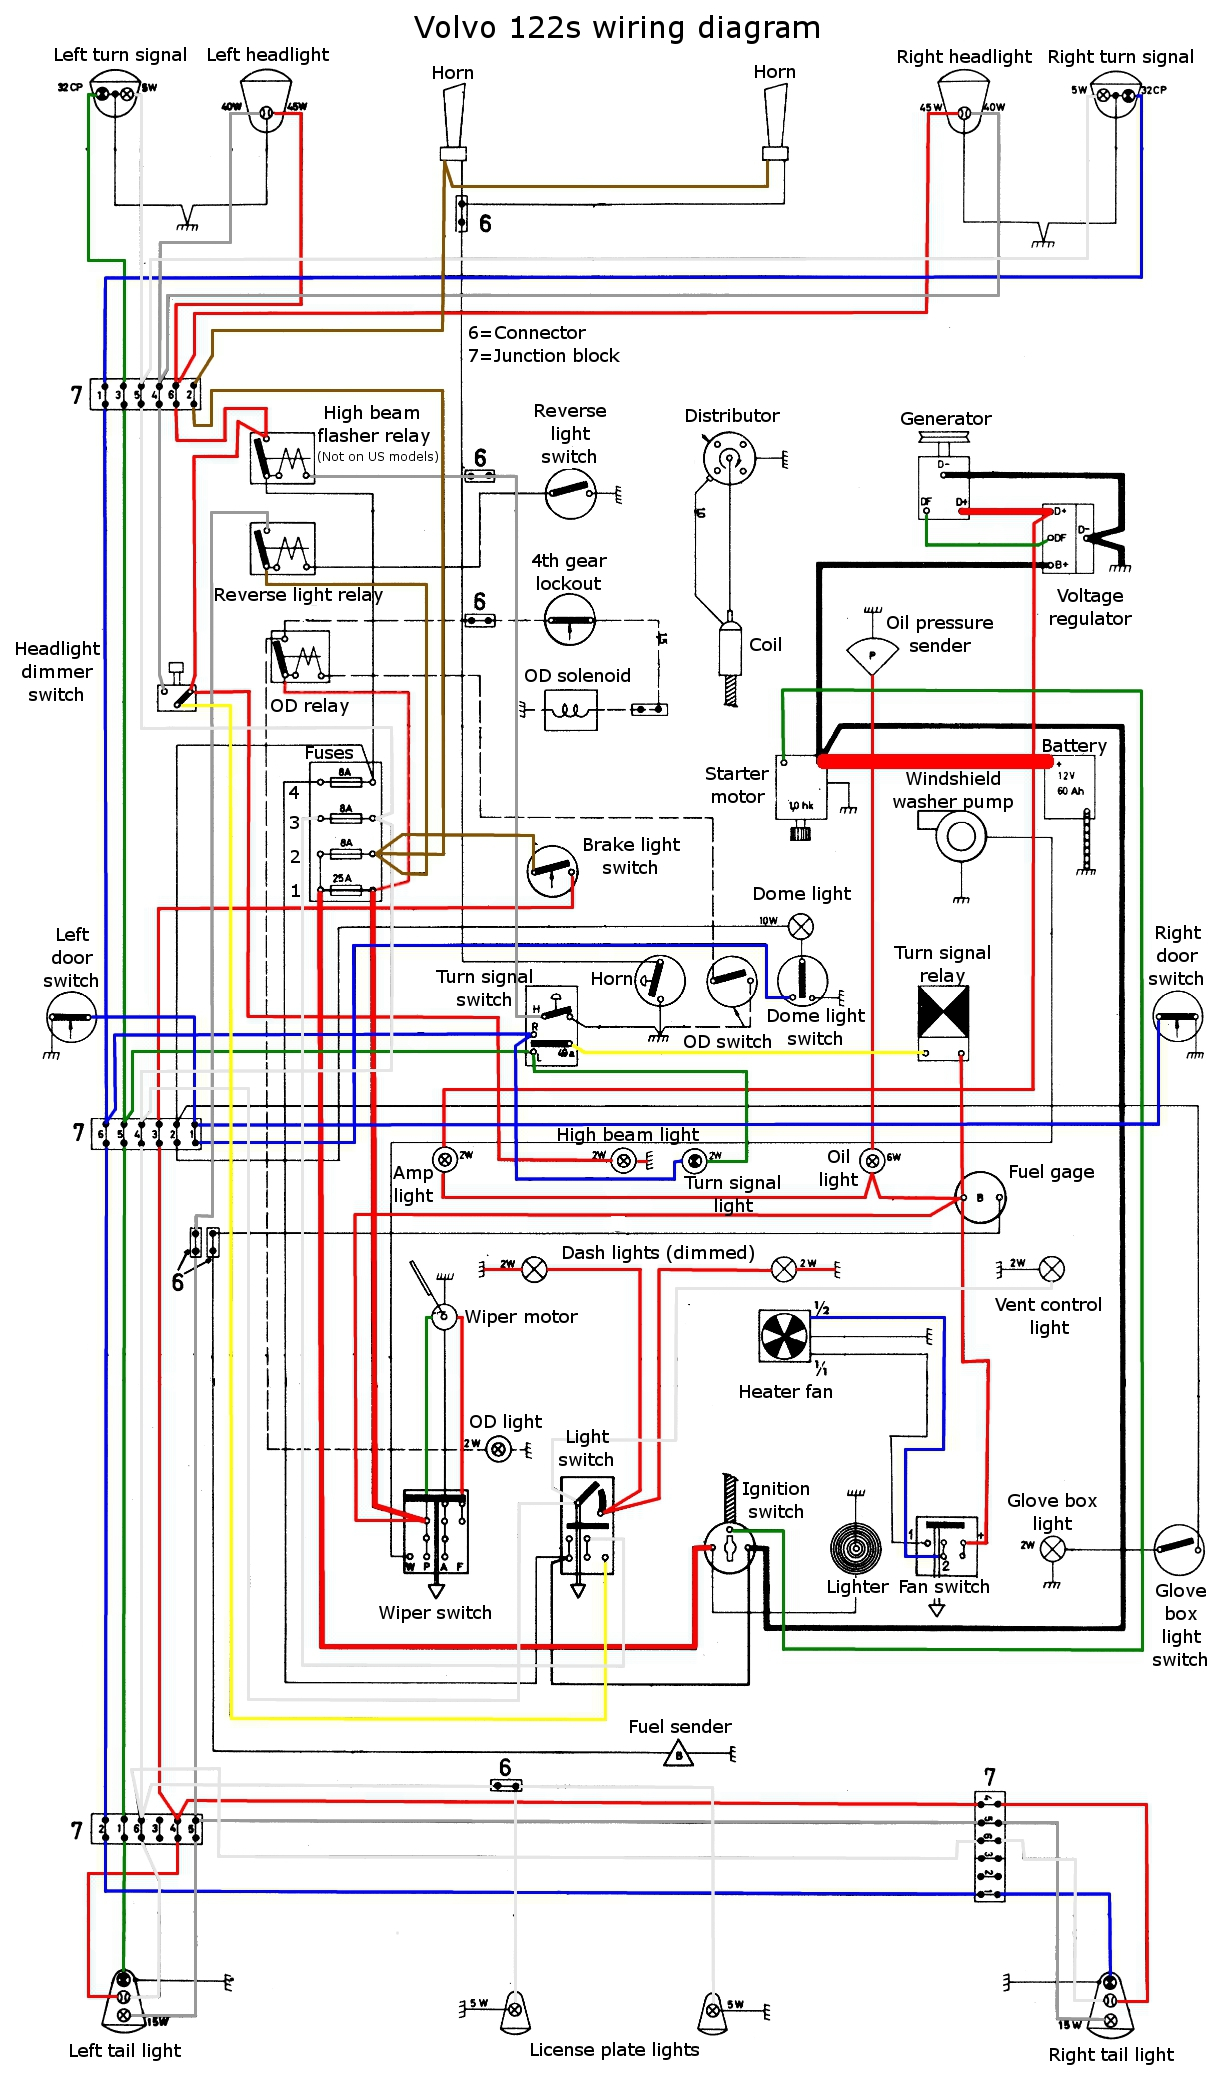 Volvo s wiring diagram t engine